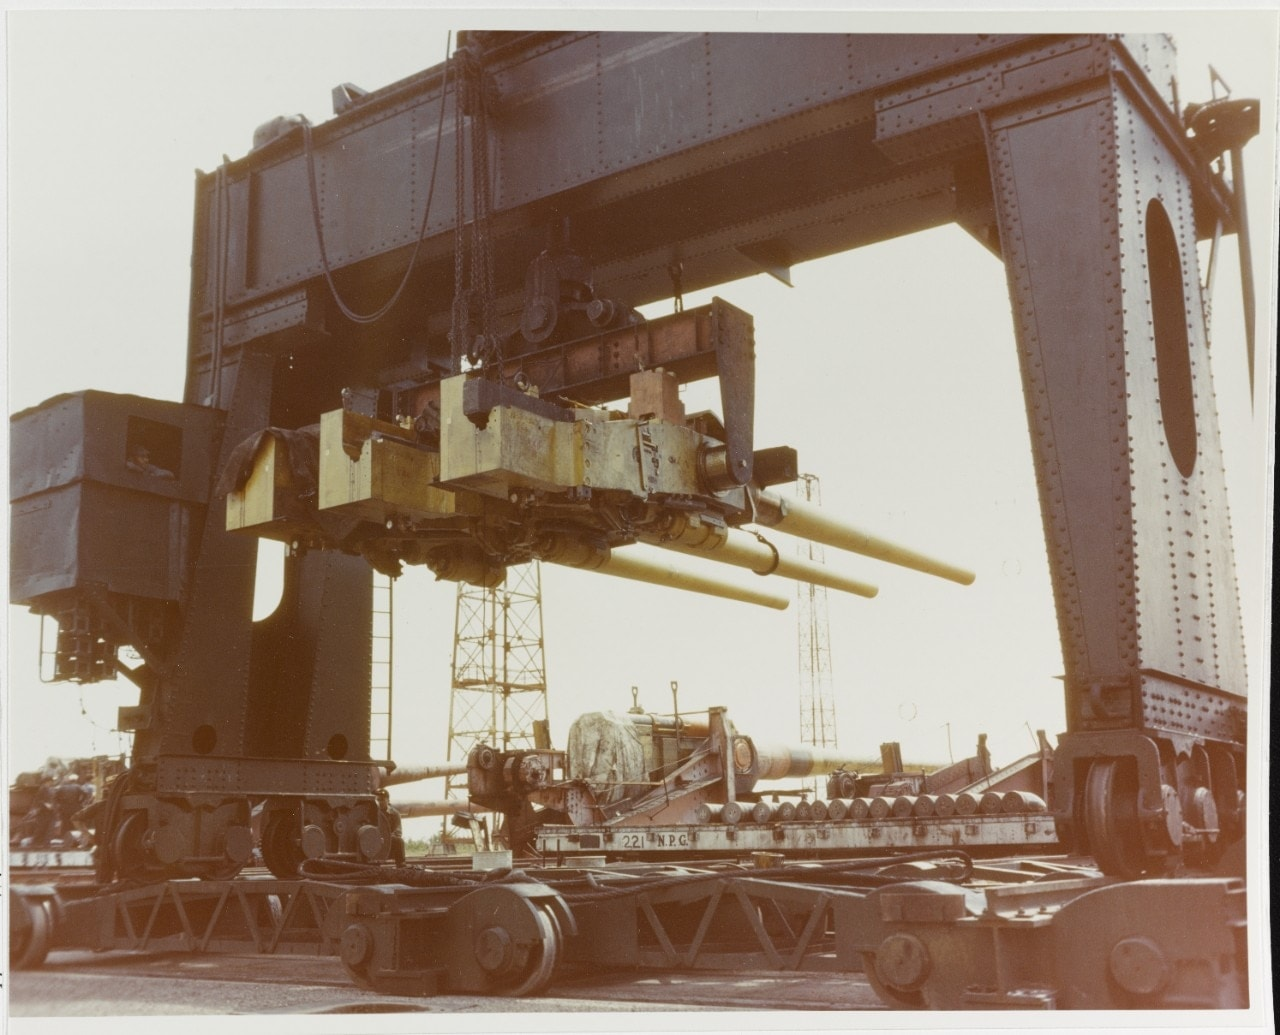 6in triple mounted guns, destined for one of the navy's new light cruisers, Dahlgren proving ground 80-G-K-13603